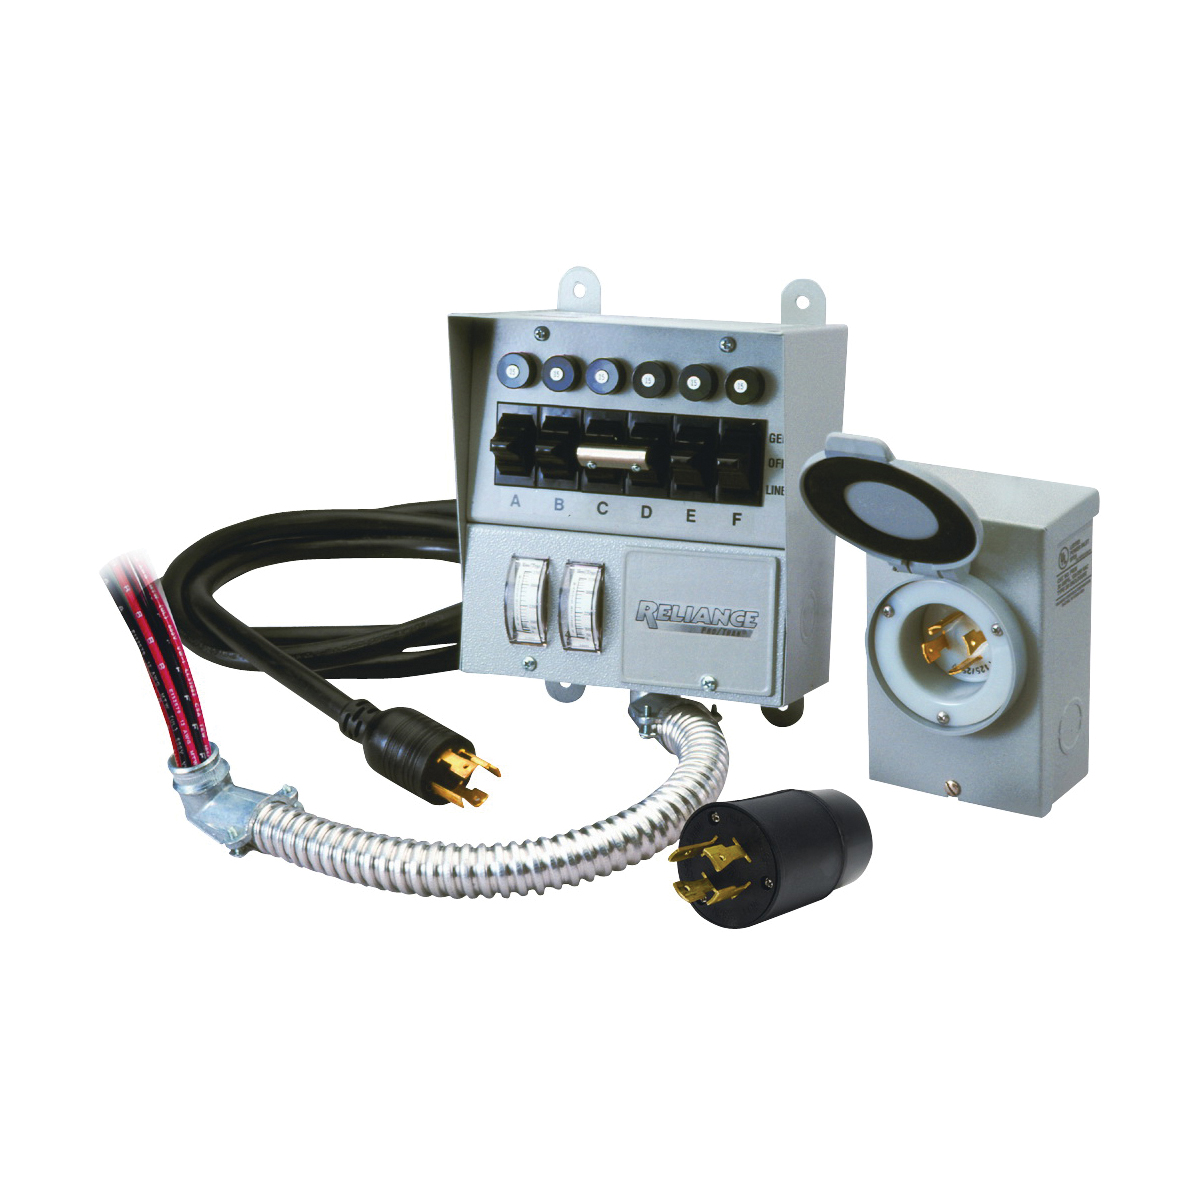 Picture of RELIANCE CONTROLS Pro/Tran 31406CRK Transfer Switch Kit, 1-Phase, 60 A, 120/250 V, 7-Circuit, 6-Breaker